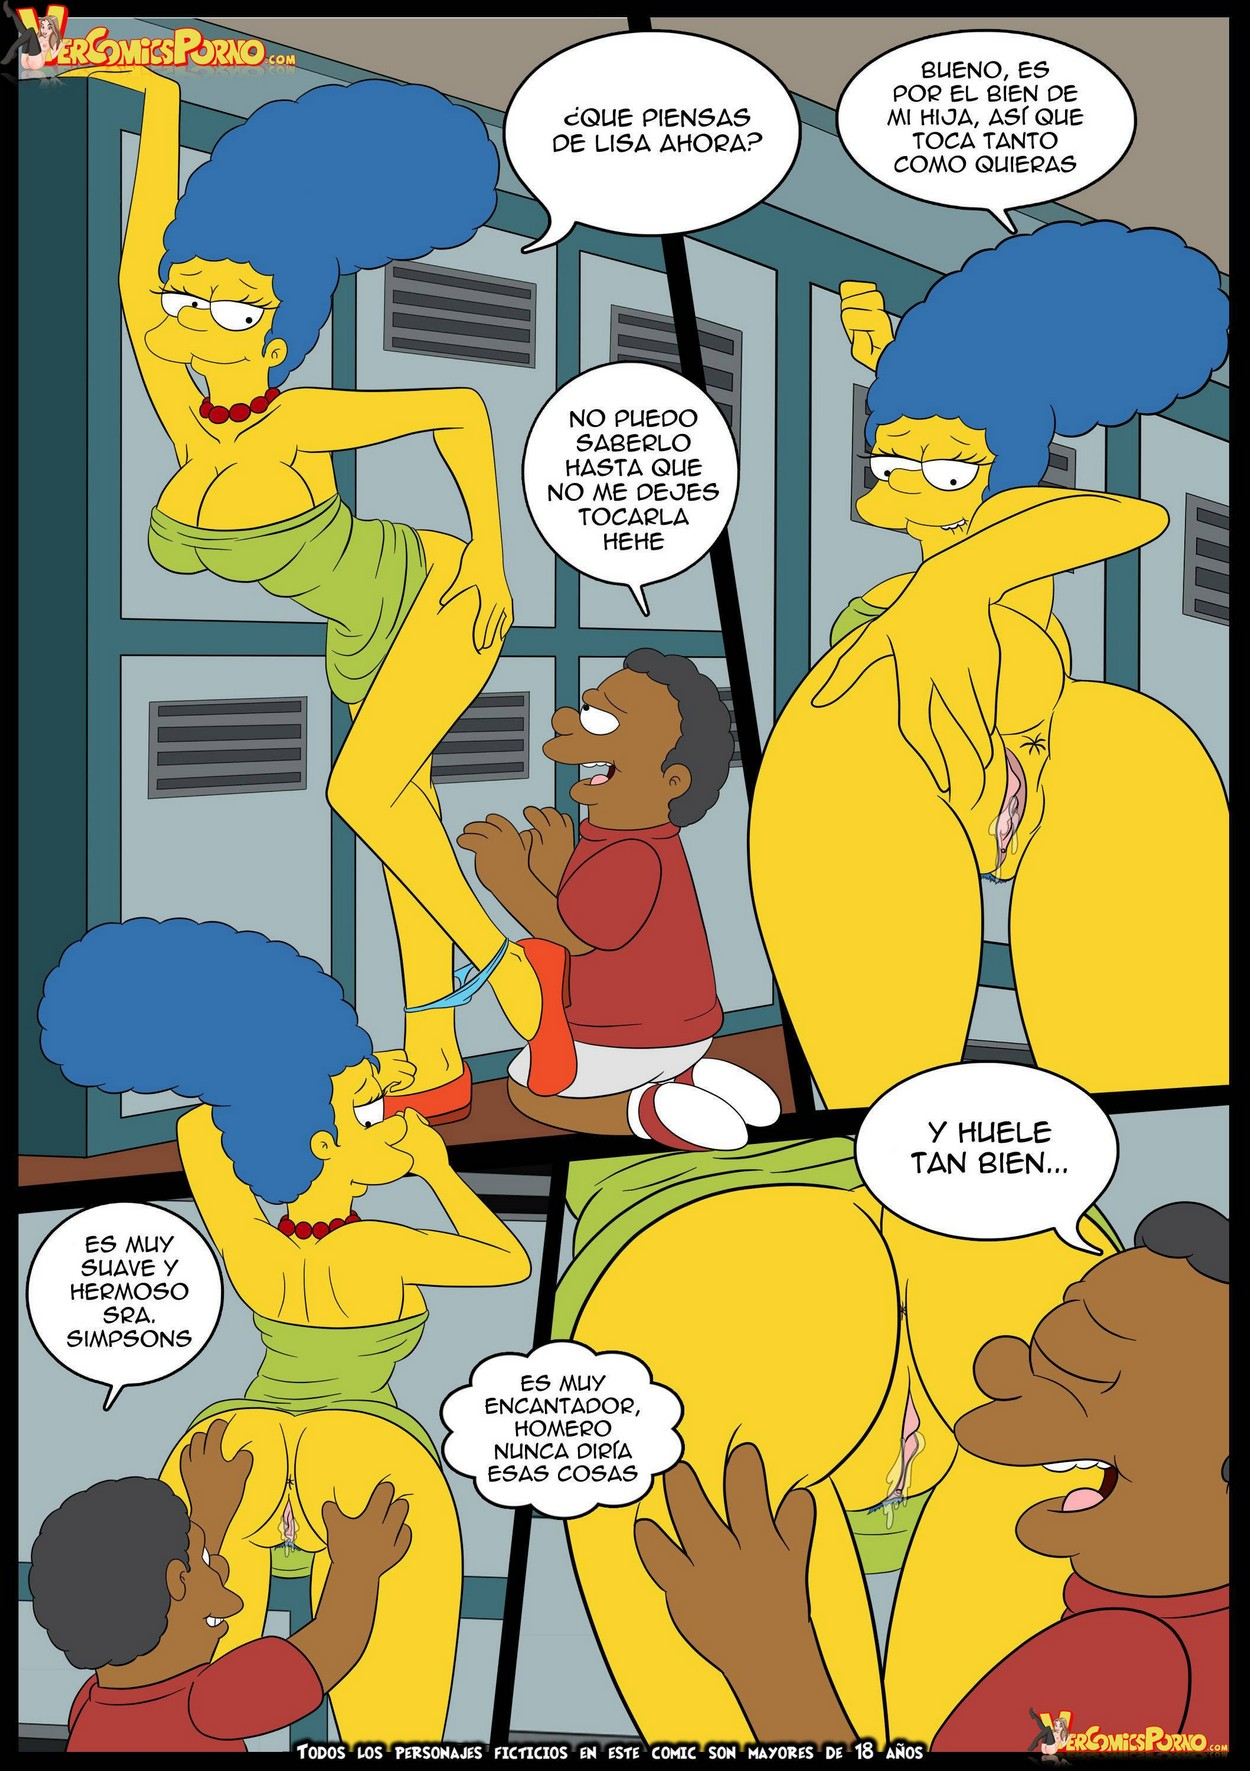 Cartoon porno Fotos Simpsons Naked anale porno